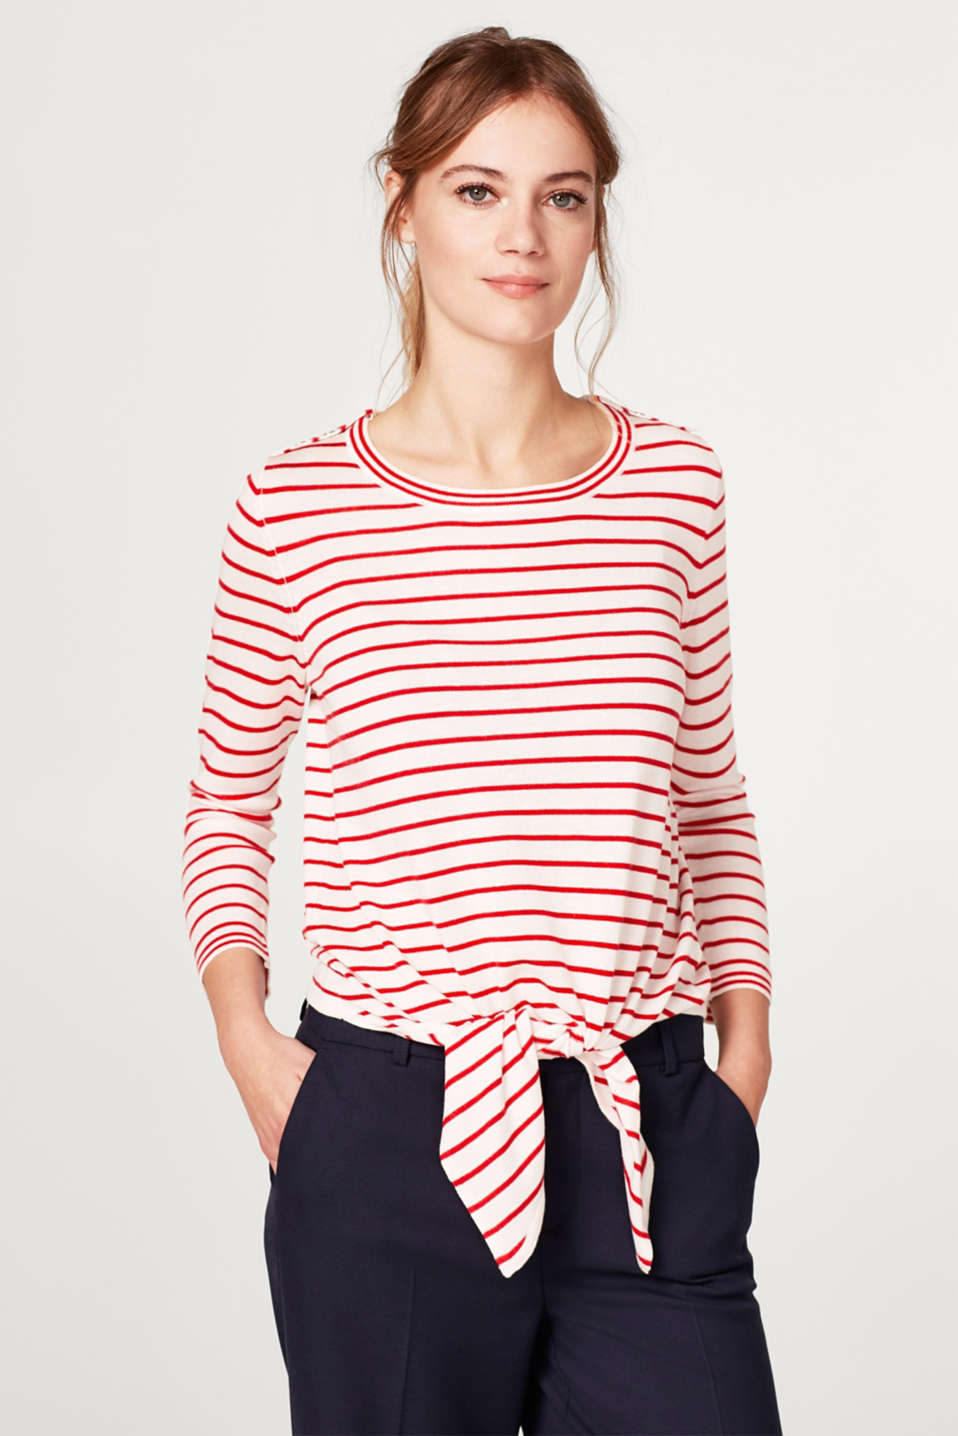 Esprit - Striped jumper with a bow detail